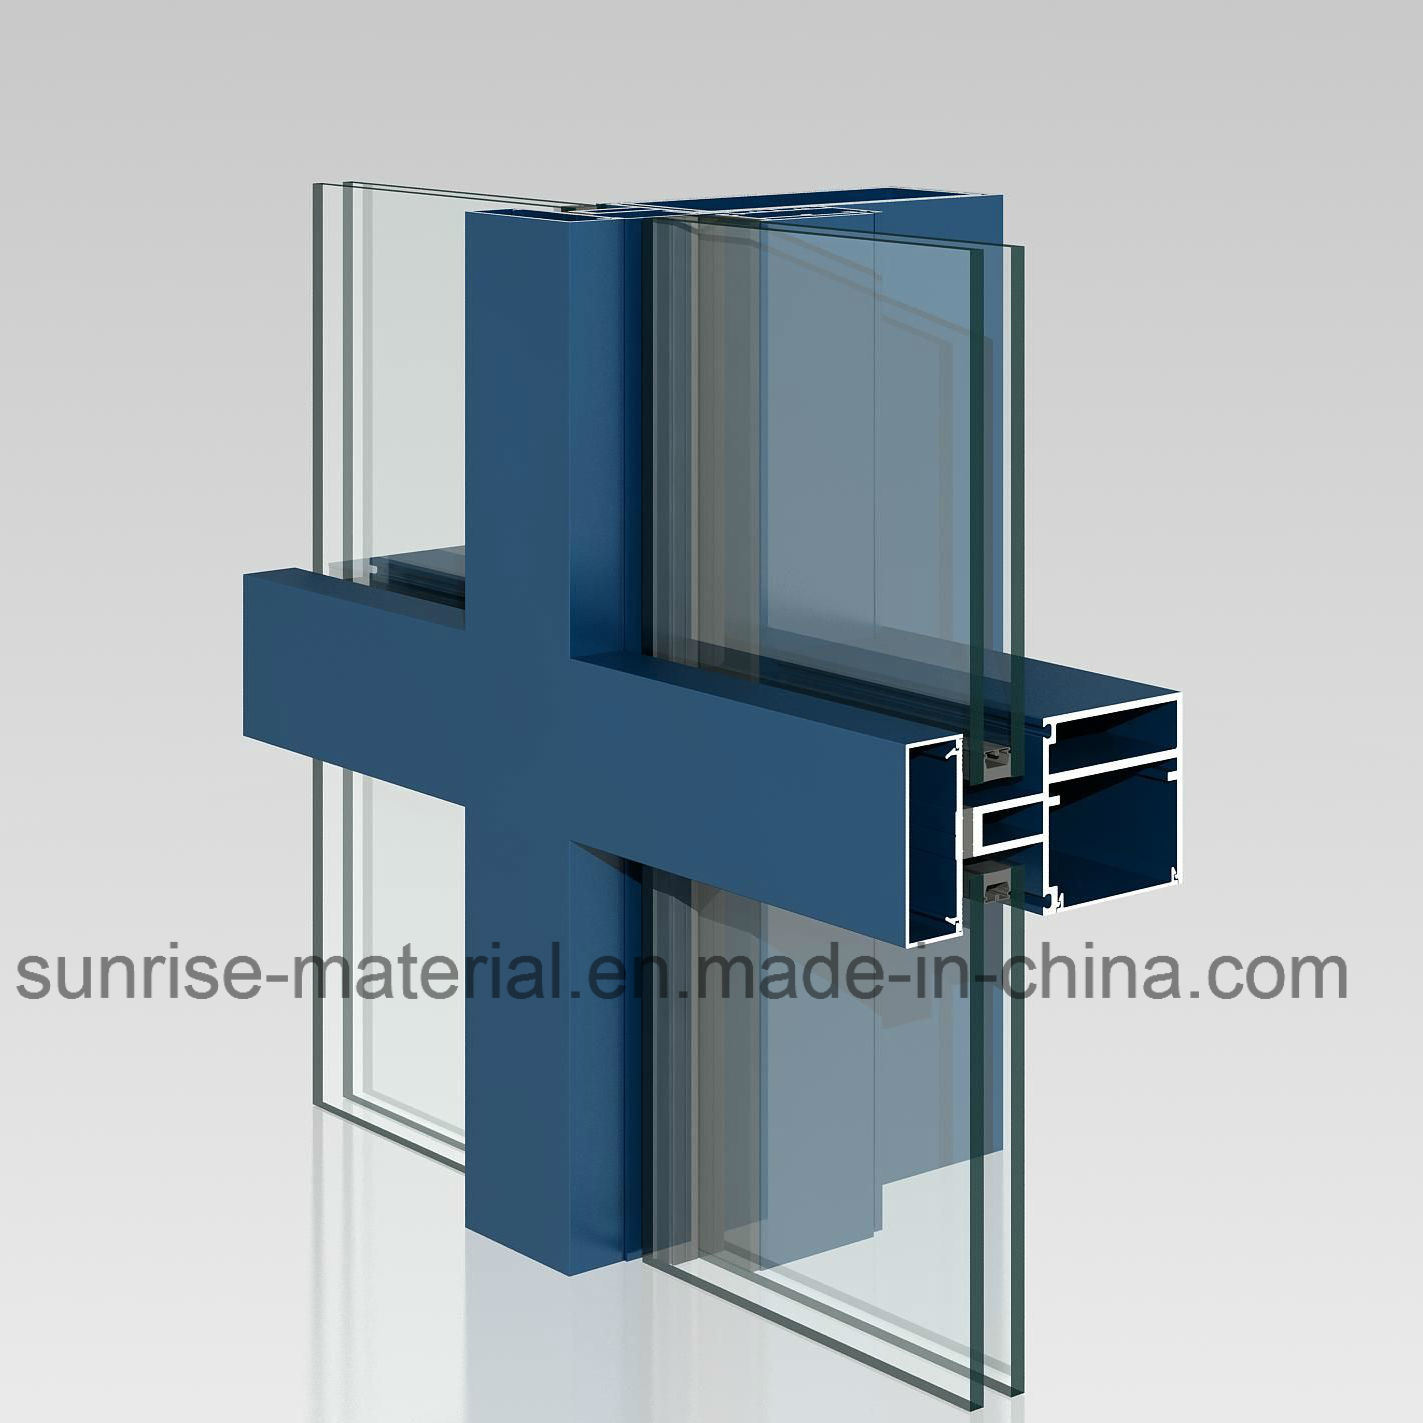 Aluminum Curtainer Wall Profiles